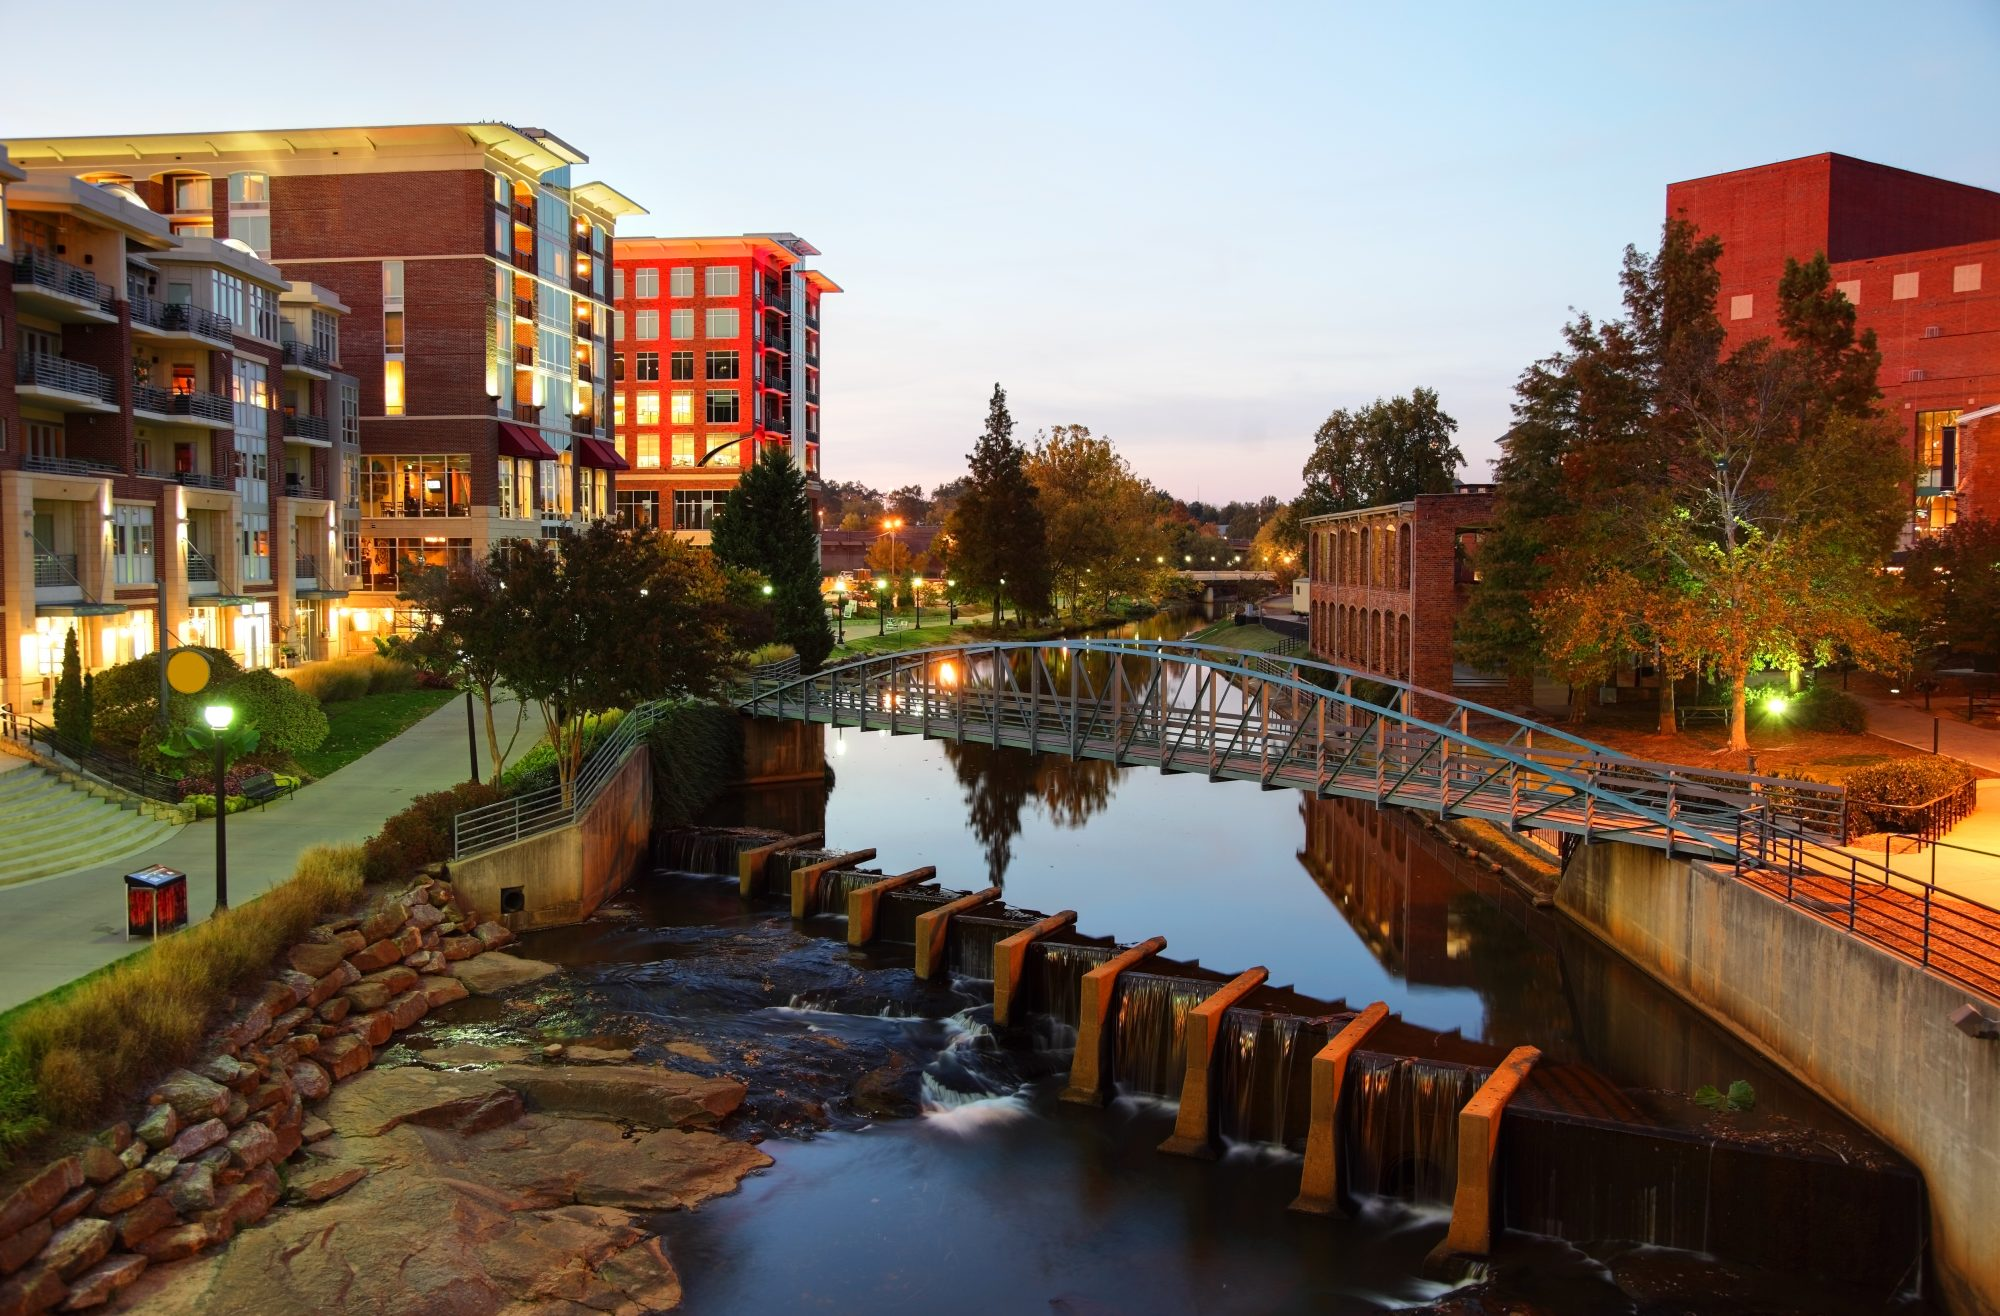 7. Greenville, South Carolina